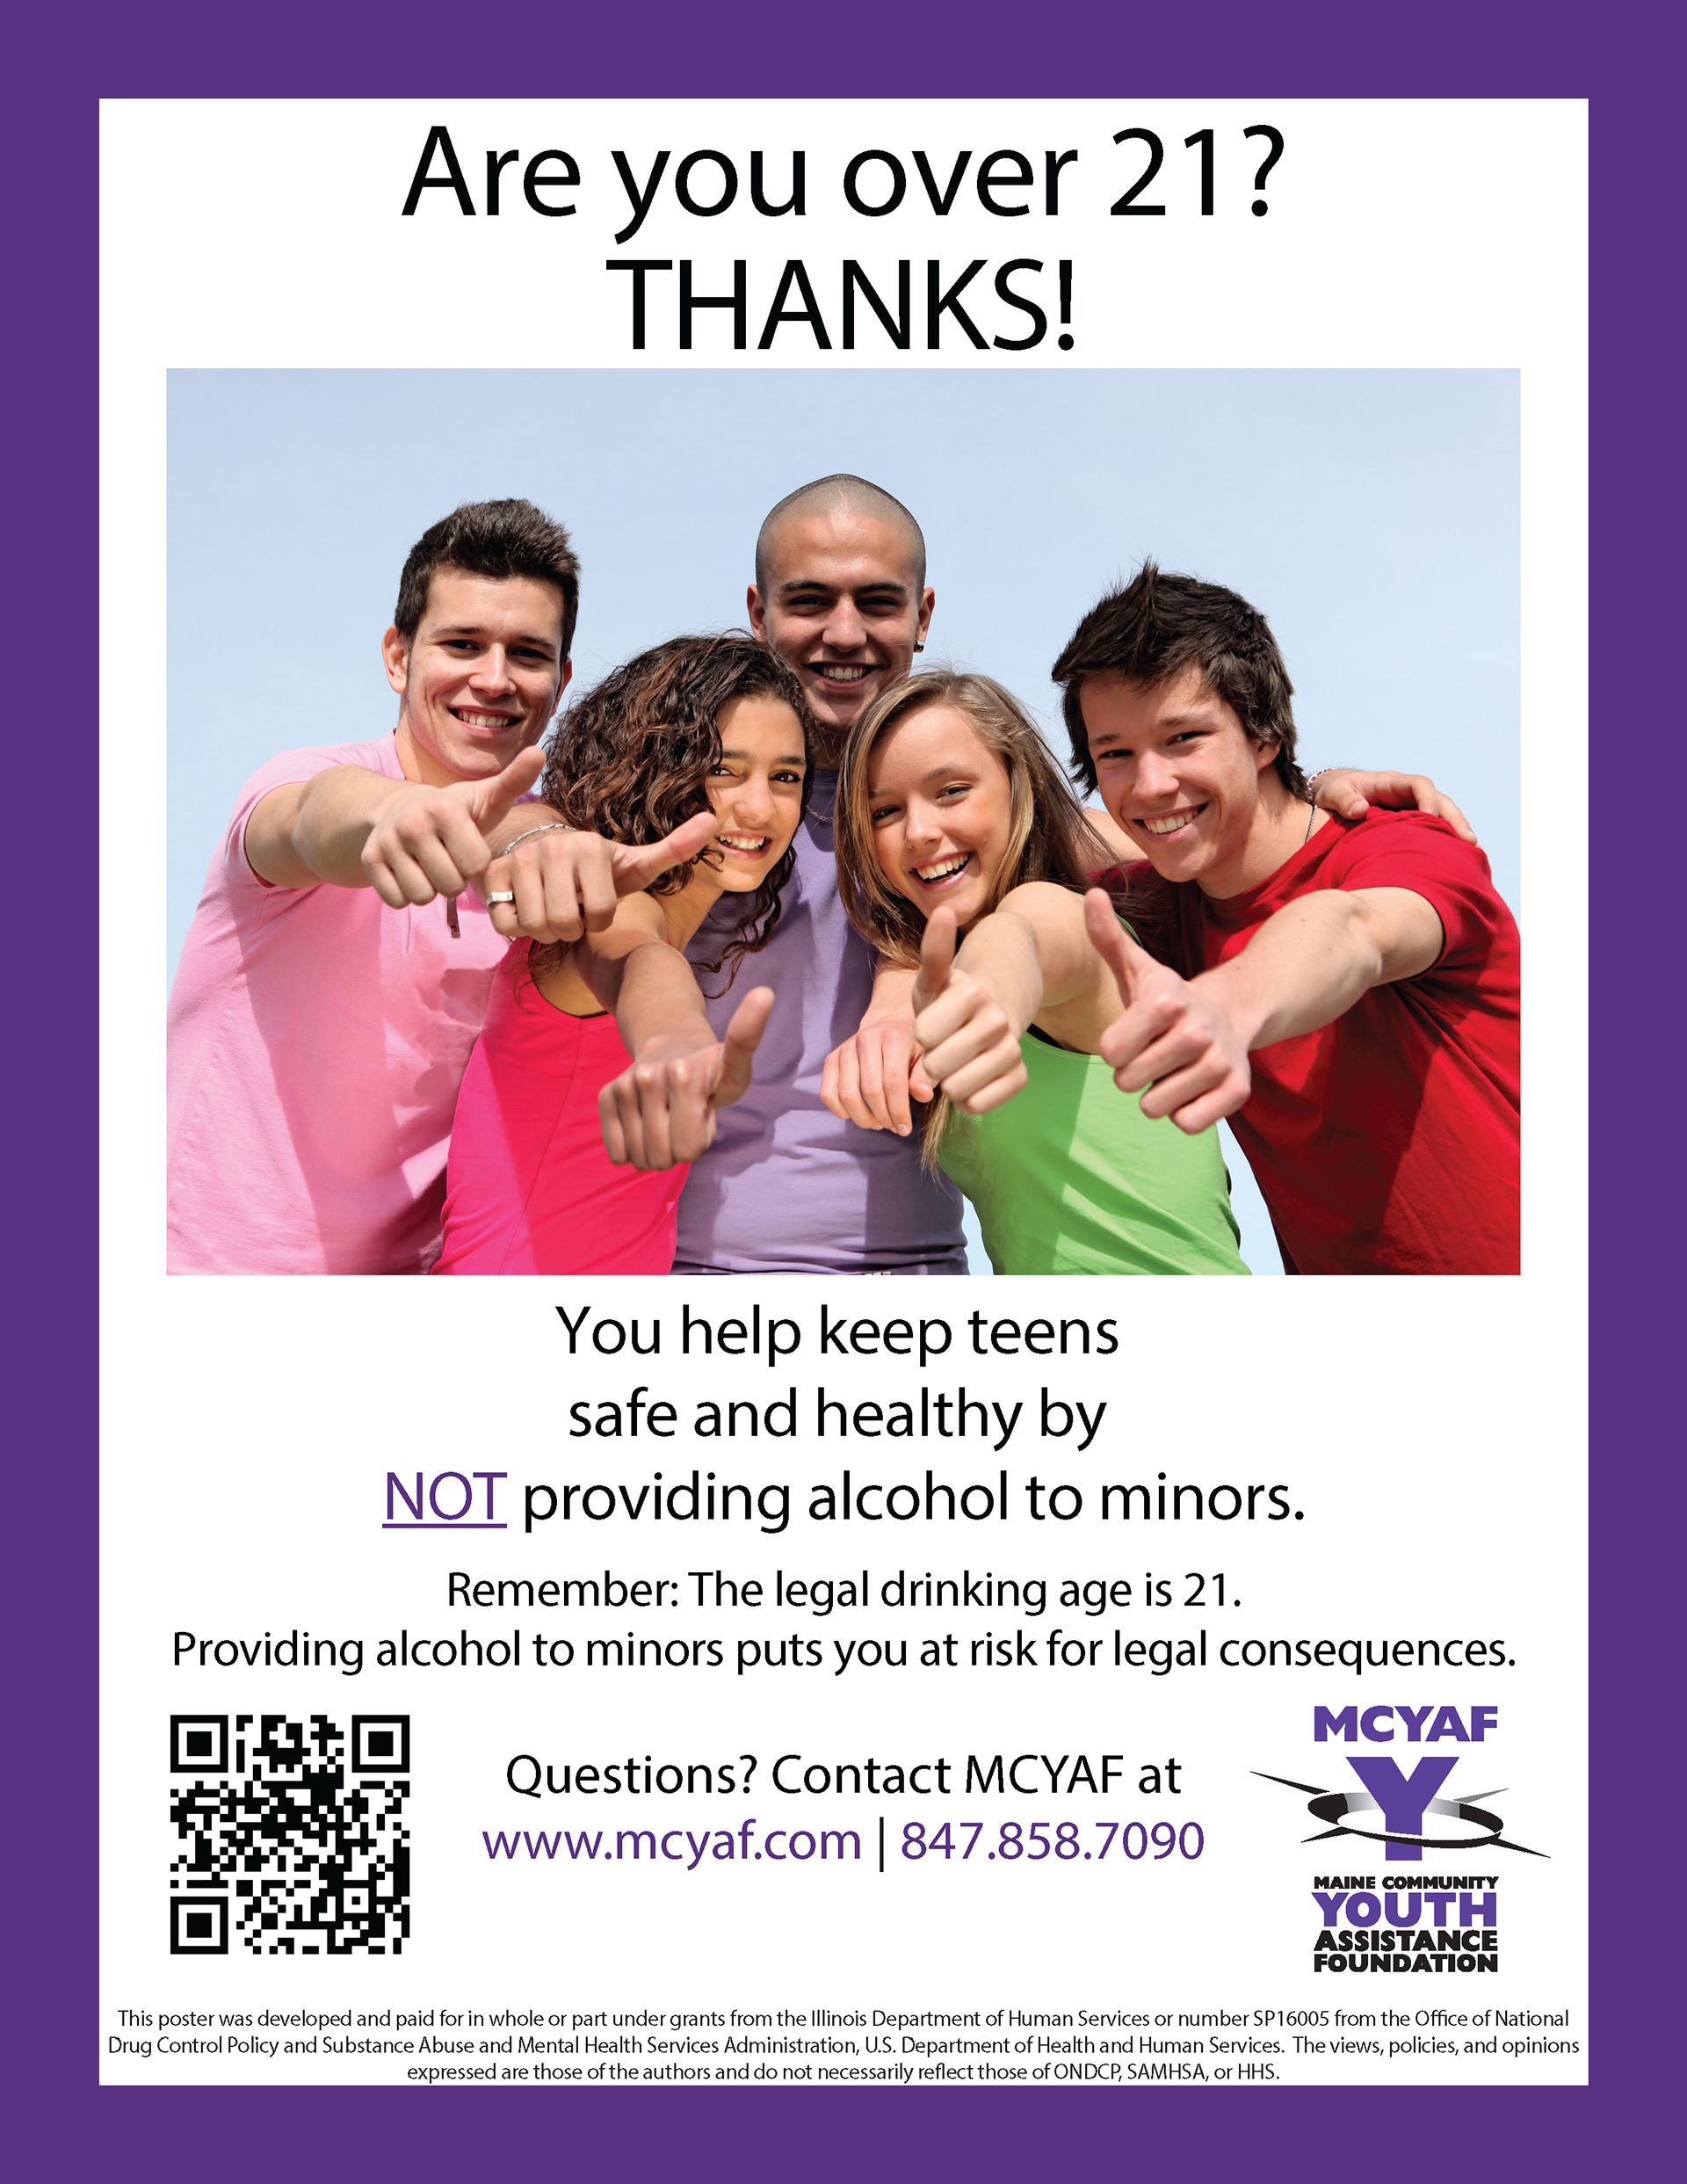 the office posters. These Posters Were Created For The Maine Community Youth Assistance Foundation (MCYAF) To Replace Previous Years Posters. Final Printed Size Was 11\ Office